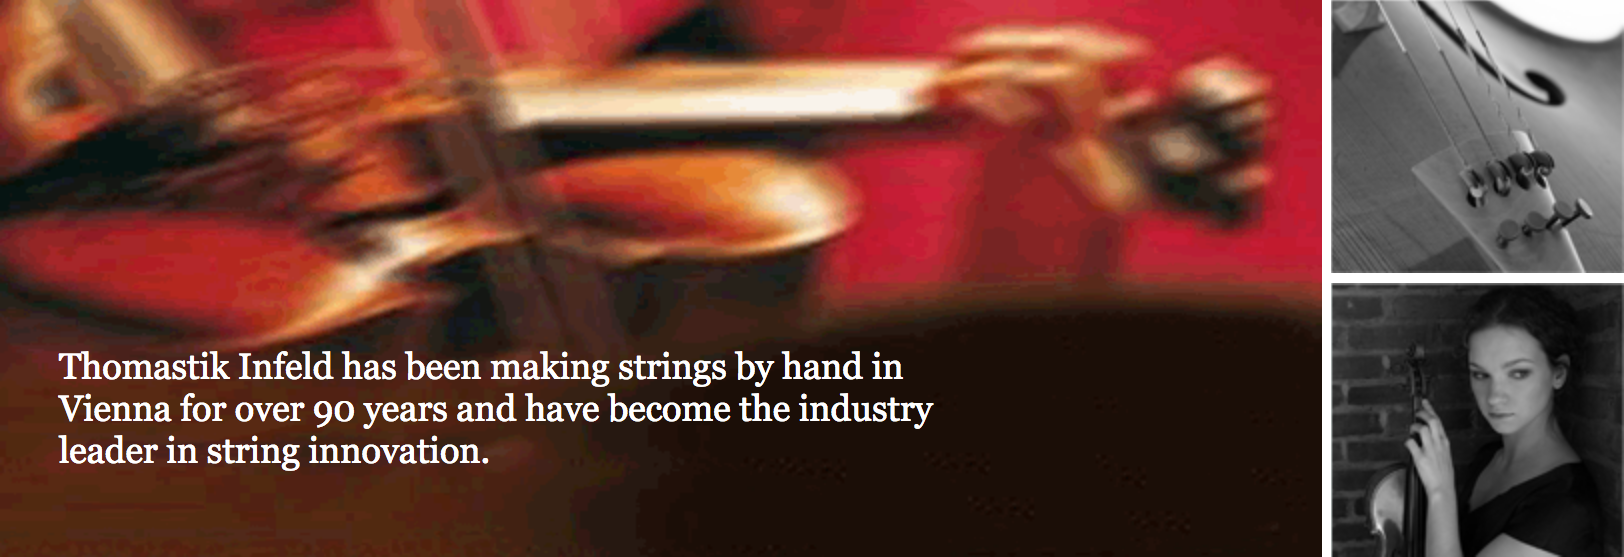 Thomastik Infeld has been making strings by hand in Vienna for over 90 years and have become the industry leader in string innovation.